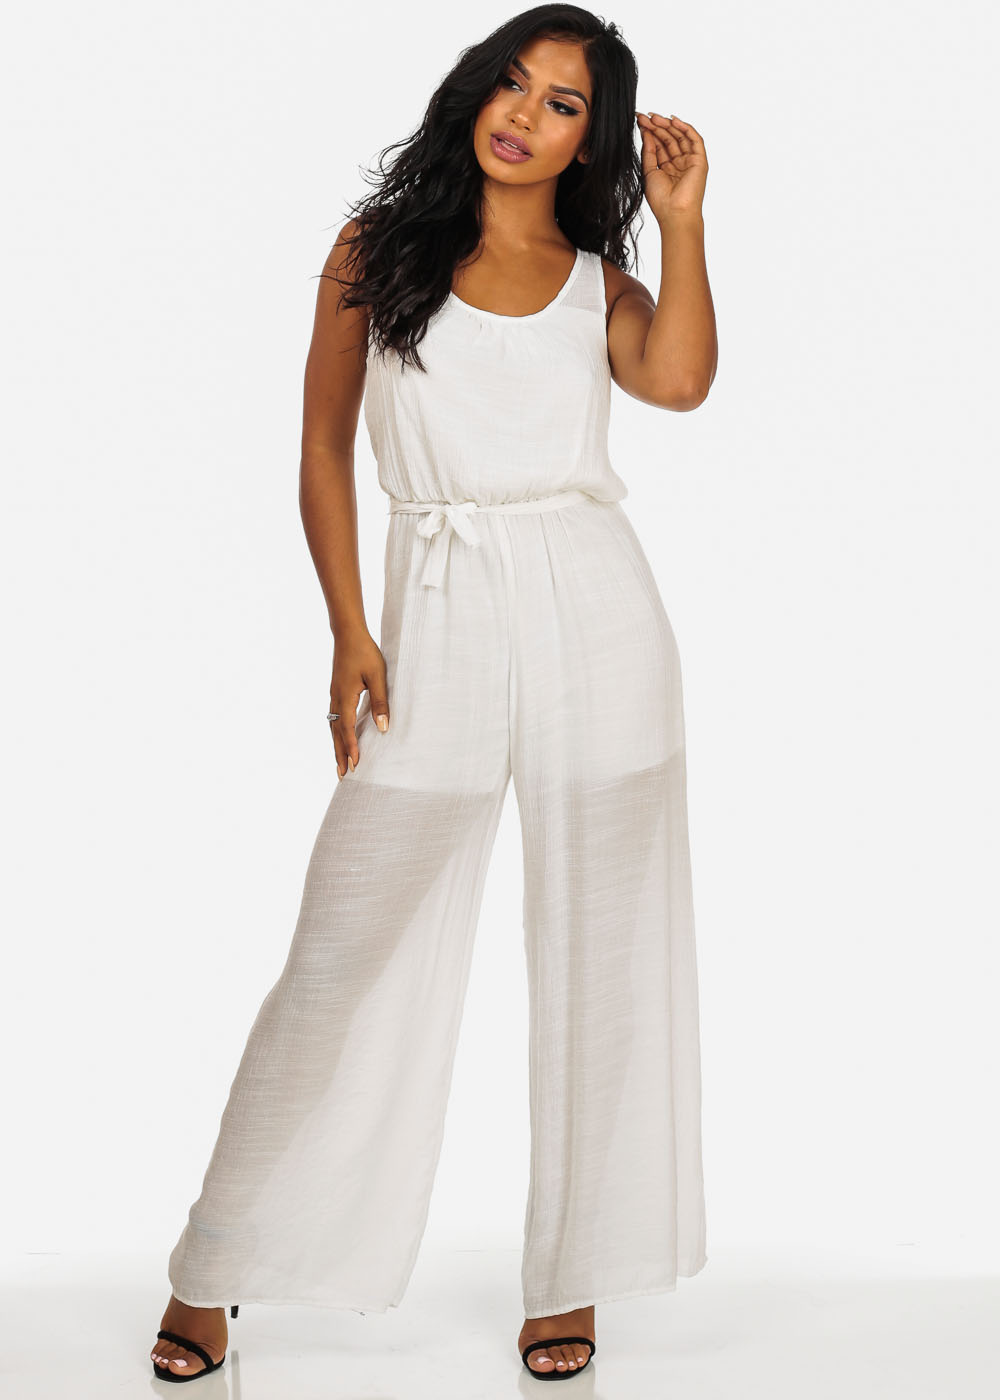 77cf905b78a White Jumpsuits For Juniors - Gomes Weine AG